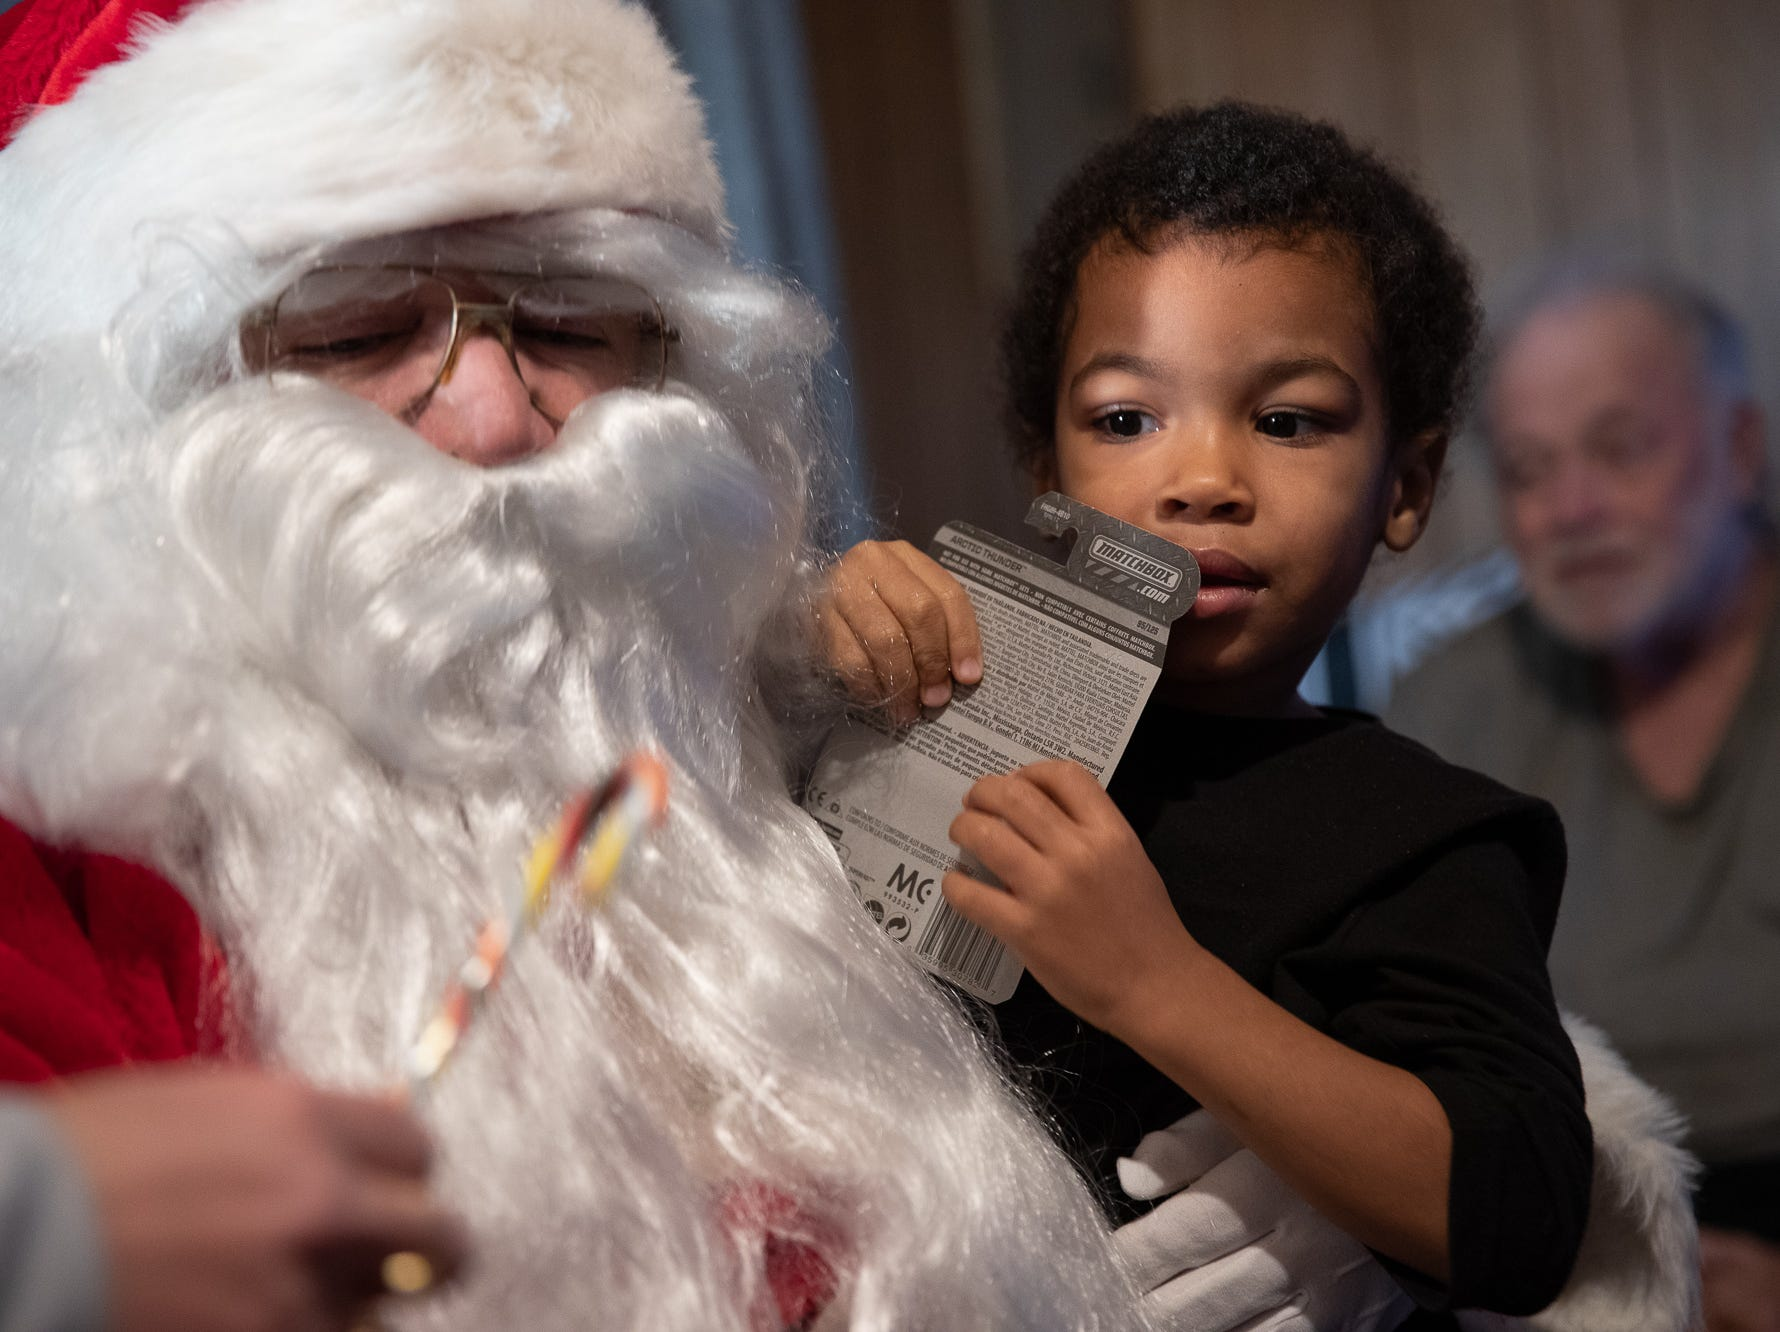 Dae'Ceyion, 3, gets presents from Santa, played by firefighter Wayne Reid, during the S.A.V.E.S Project Santa, Saturday, Dec. 22, 2018, in McSherrystown Borough. The S.A.V.E.S Project Santa donated food, toys, and clothing to 12 local families in need.